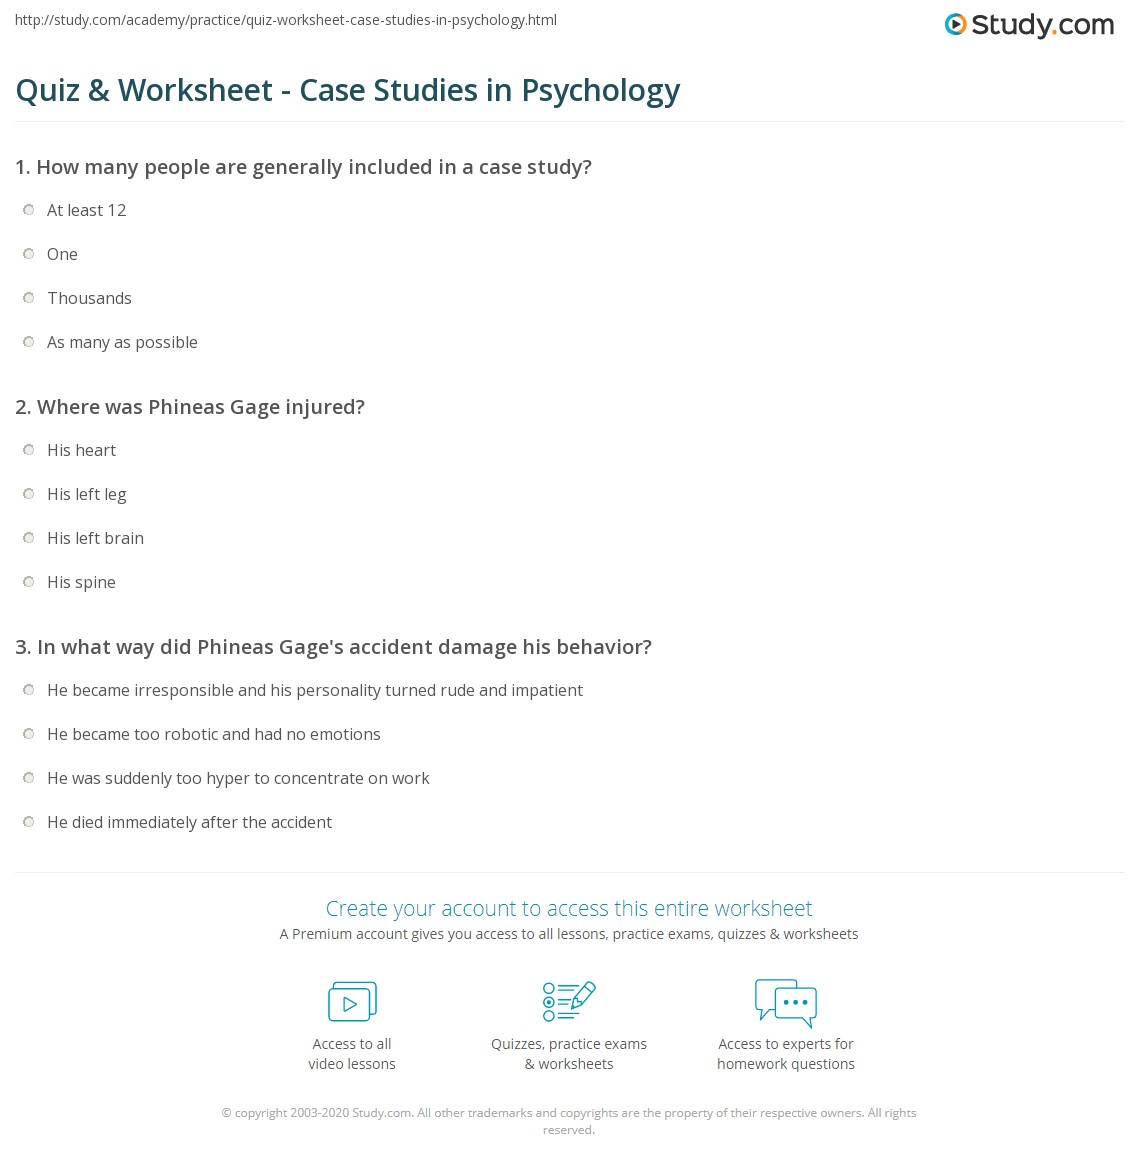 quiz worksheet case studies in psychology. Black Bedroom Furniture Sets. Home Design Ideas